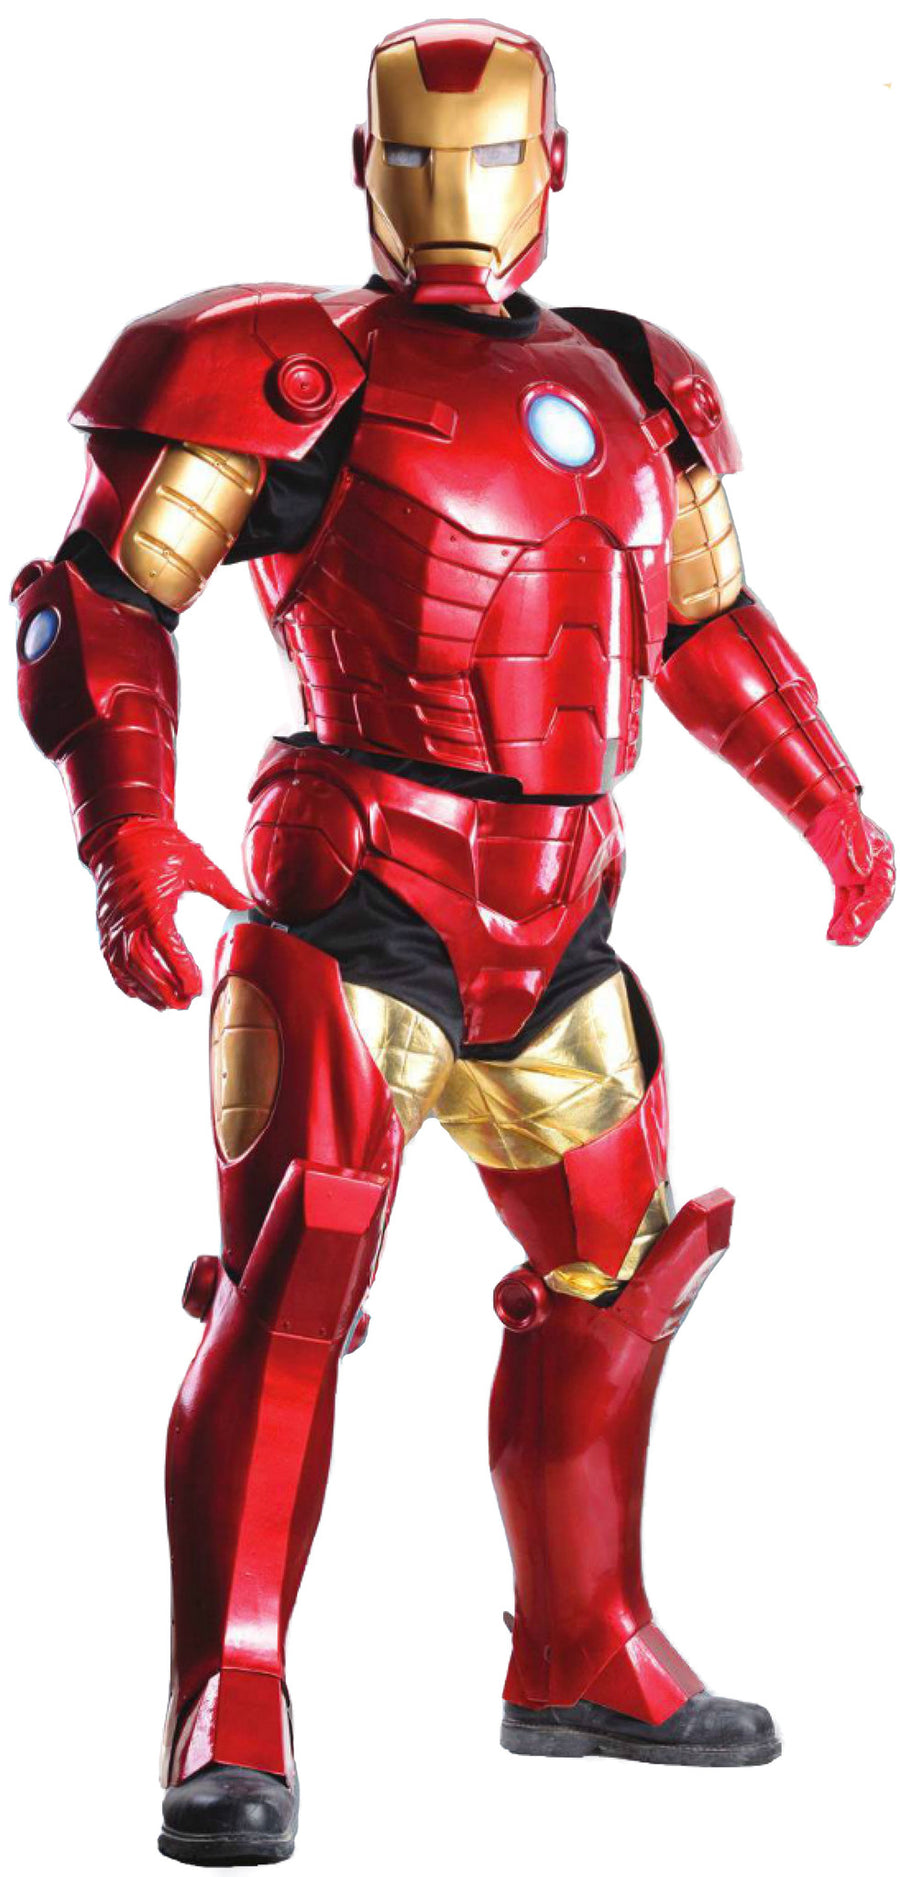 Supreme Edition Iron Man  sc 1 st  Mystique Costumes & Costumes for Men - Mystique Costumes